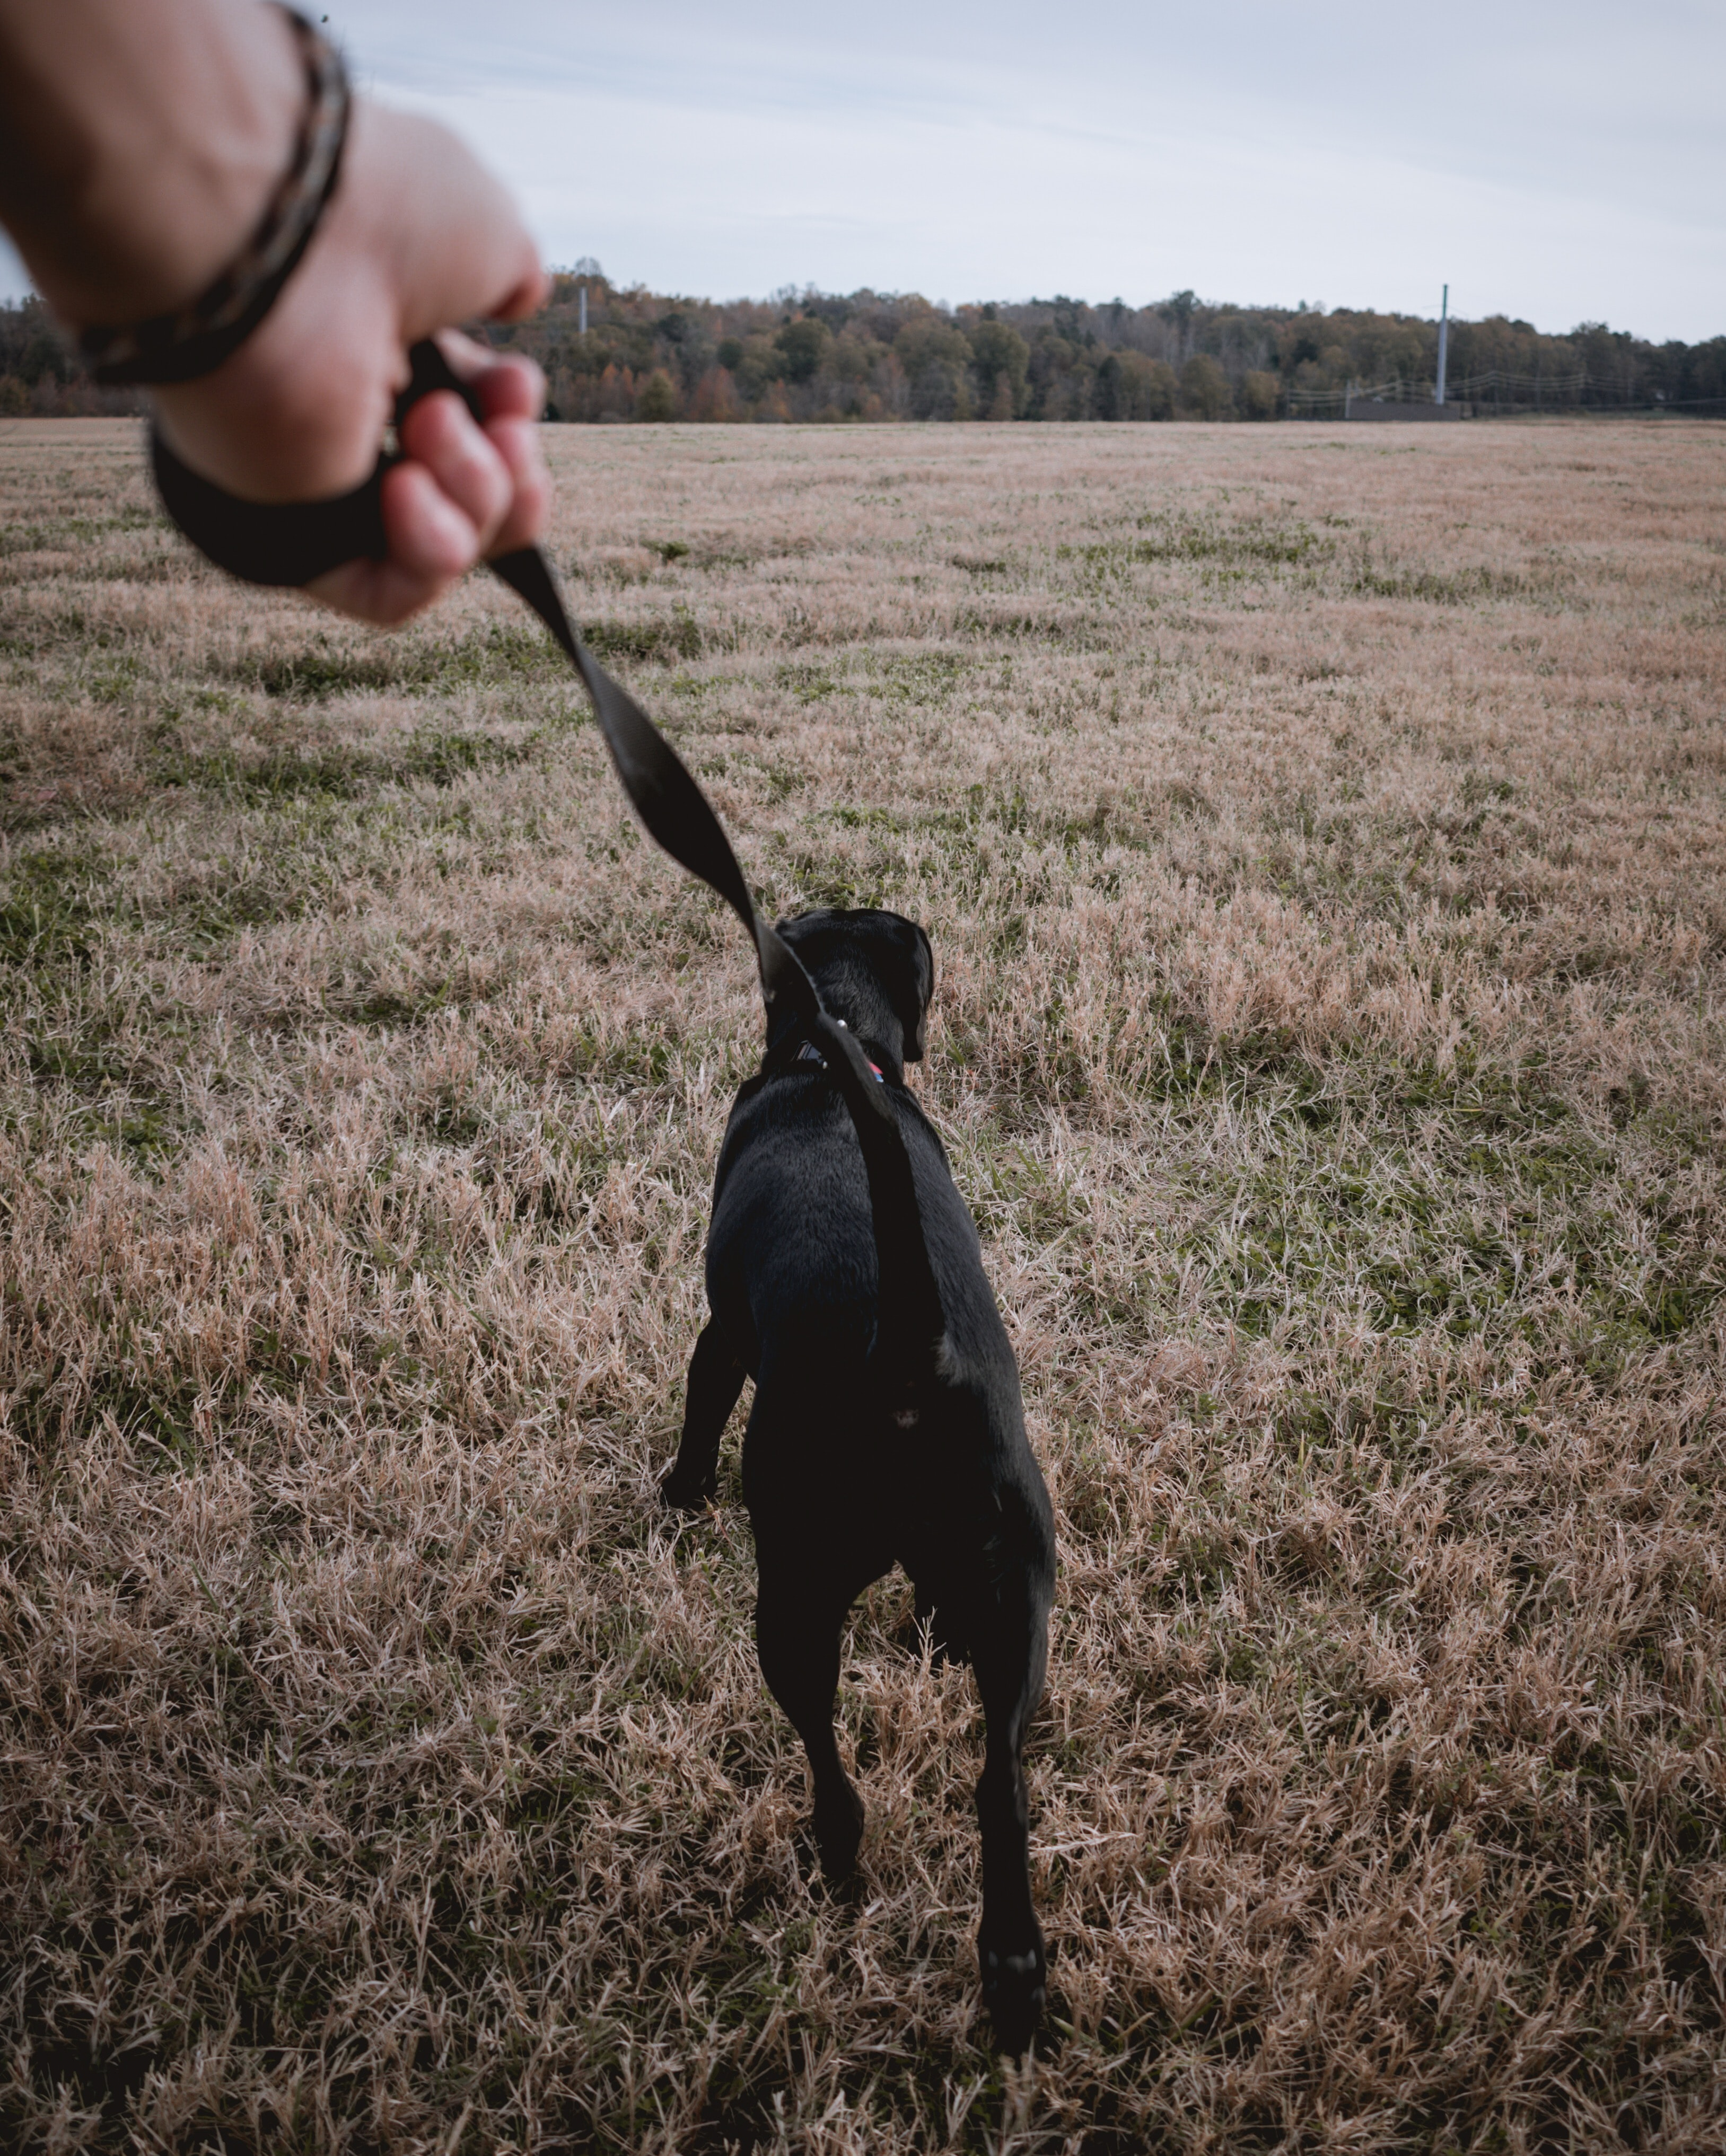 person holding black dog strap